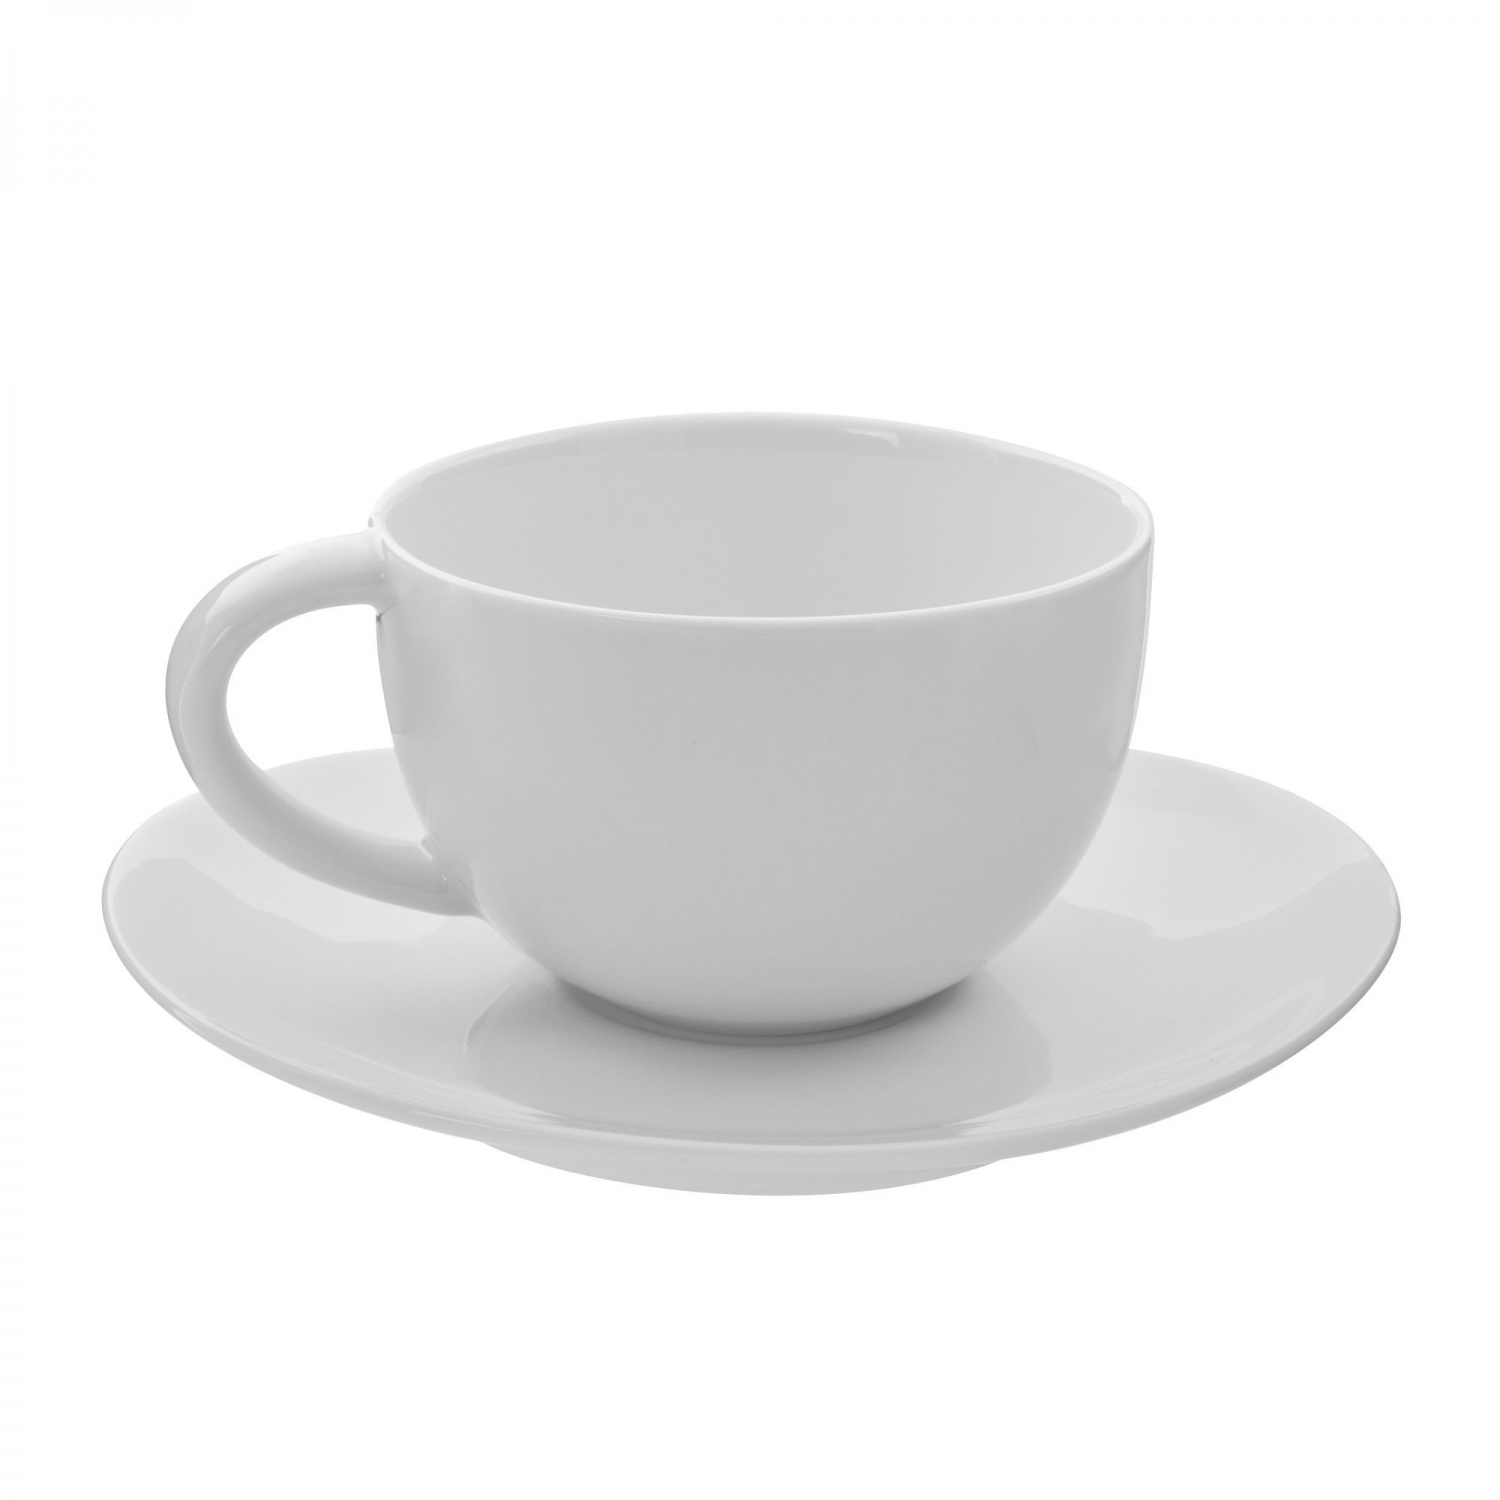 10 Strawberry Street RVL0009 Royal Oval White Cup and Saucer Set 10 oz.